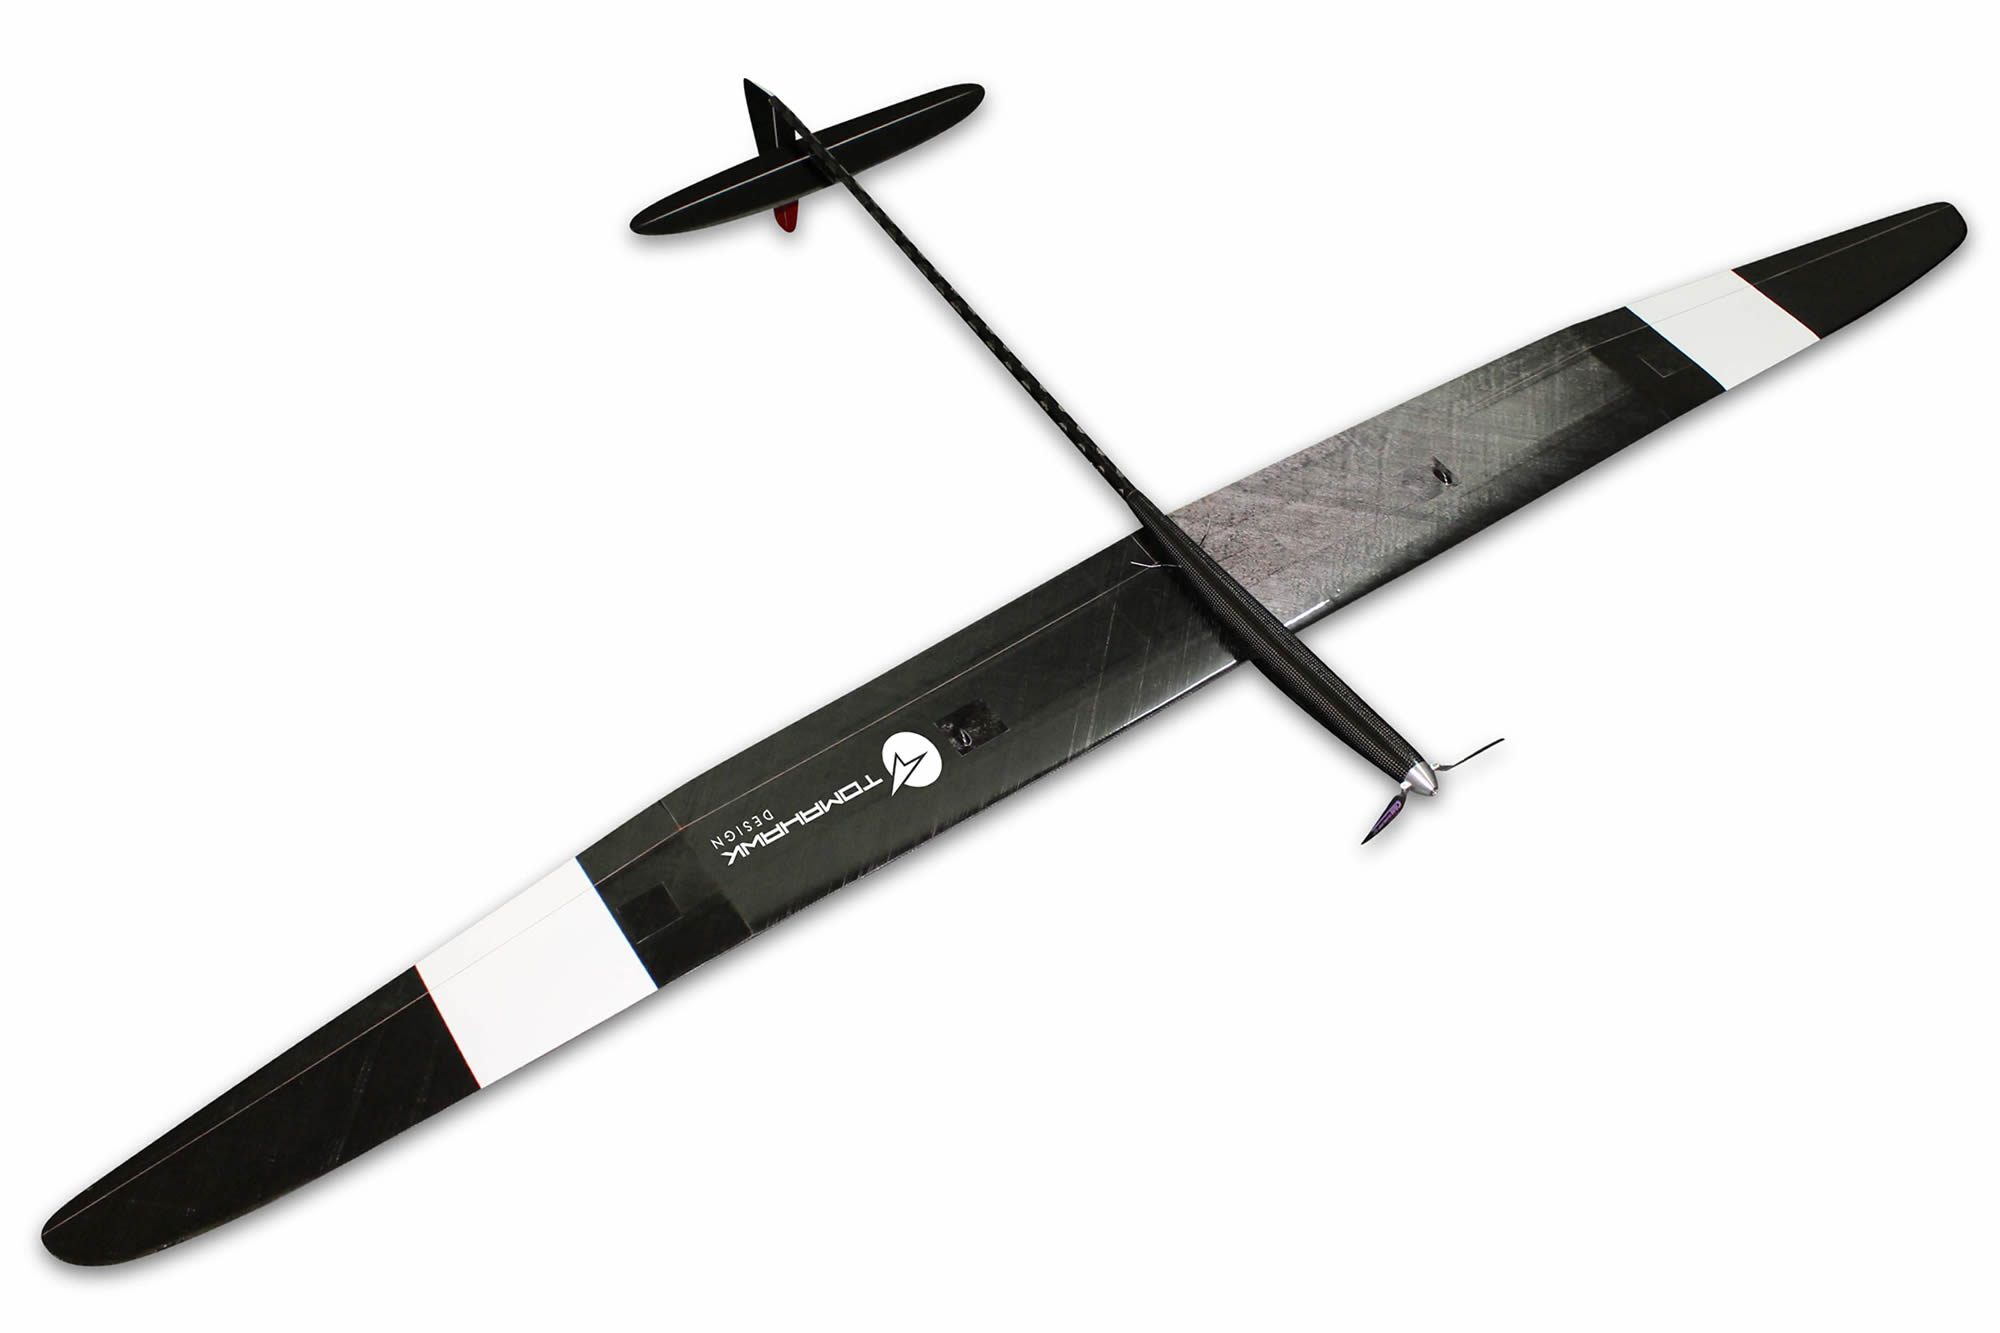 Bora F5J Tomahawk Aviation